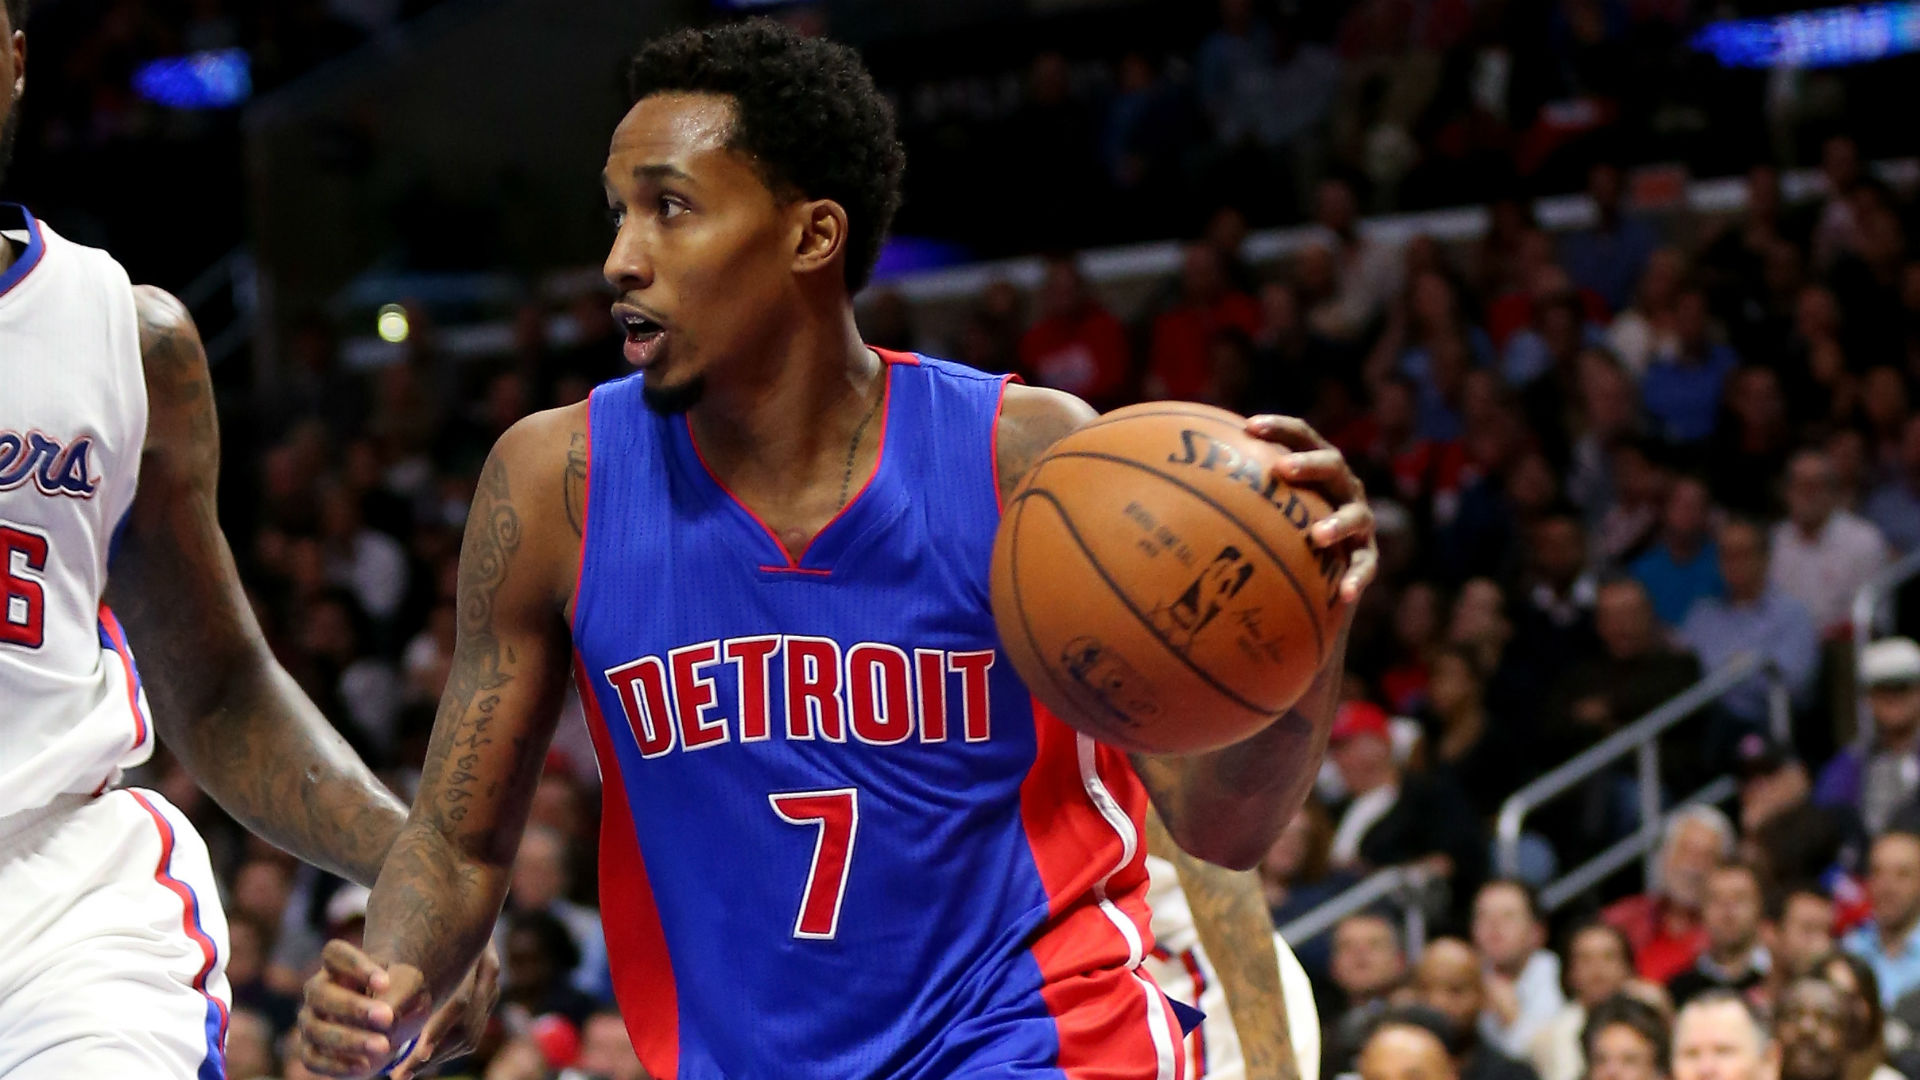 brandon jennings - photo #40